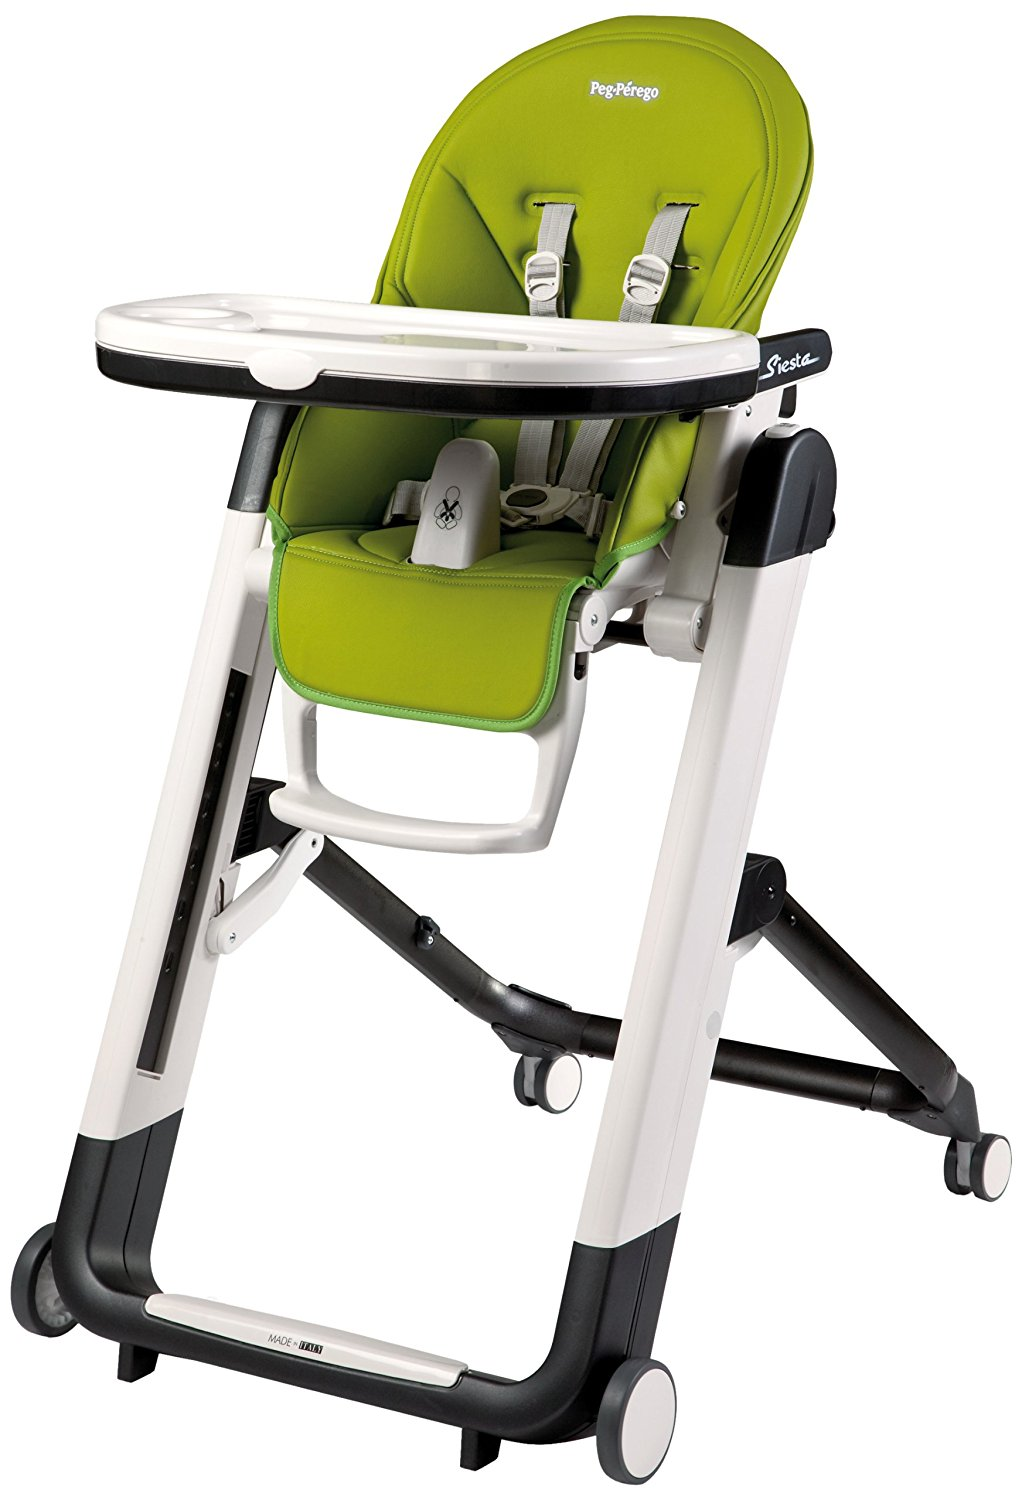 high chair that attaches to counter boys potty best for height table of 2018 baby gear specialist this comes in a nice green color and the material is 70 polyester 30 cotton